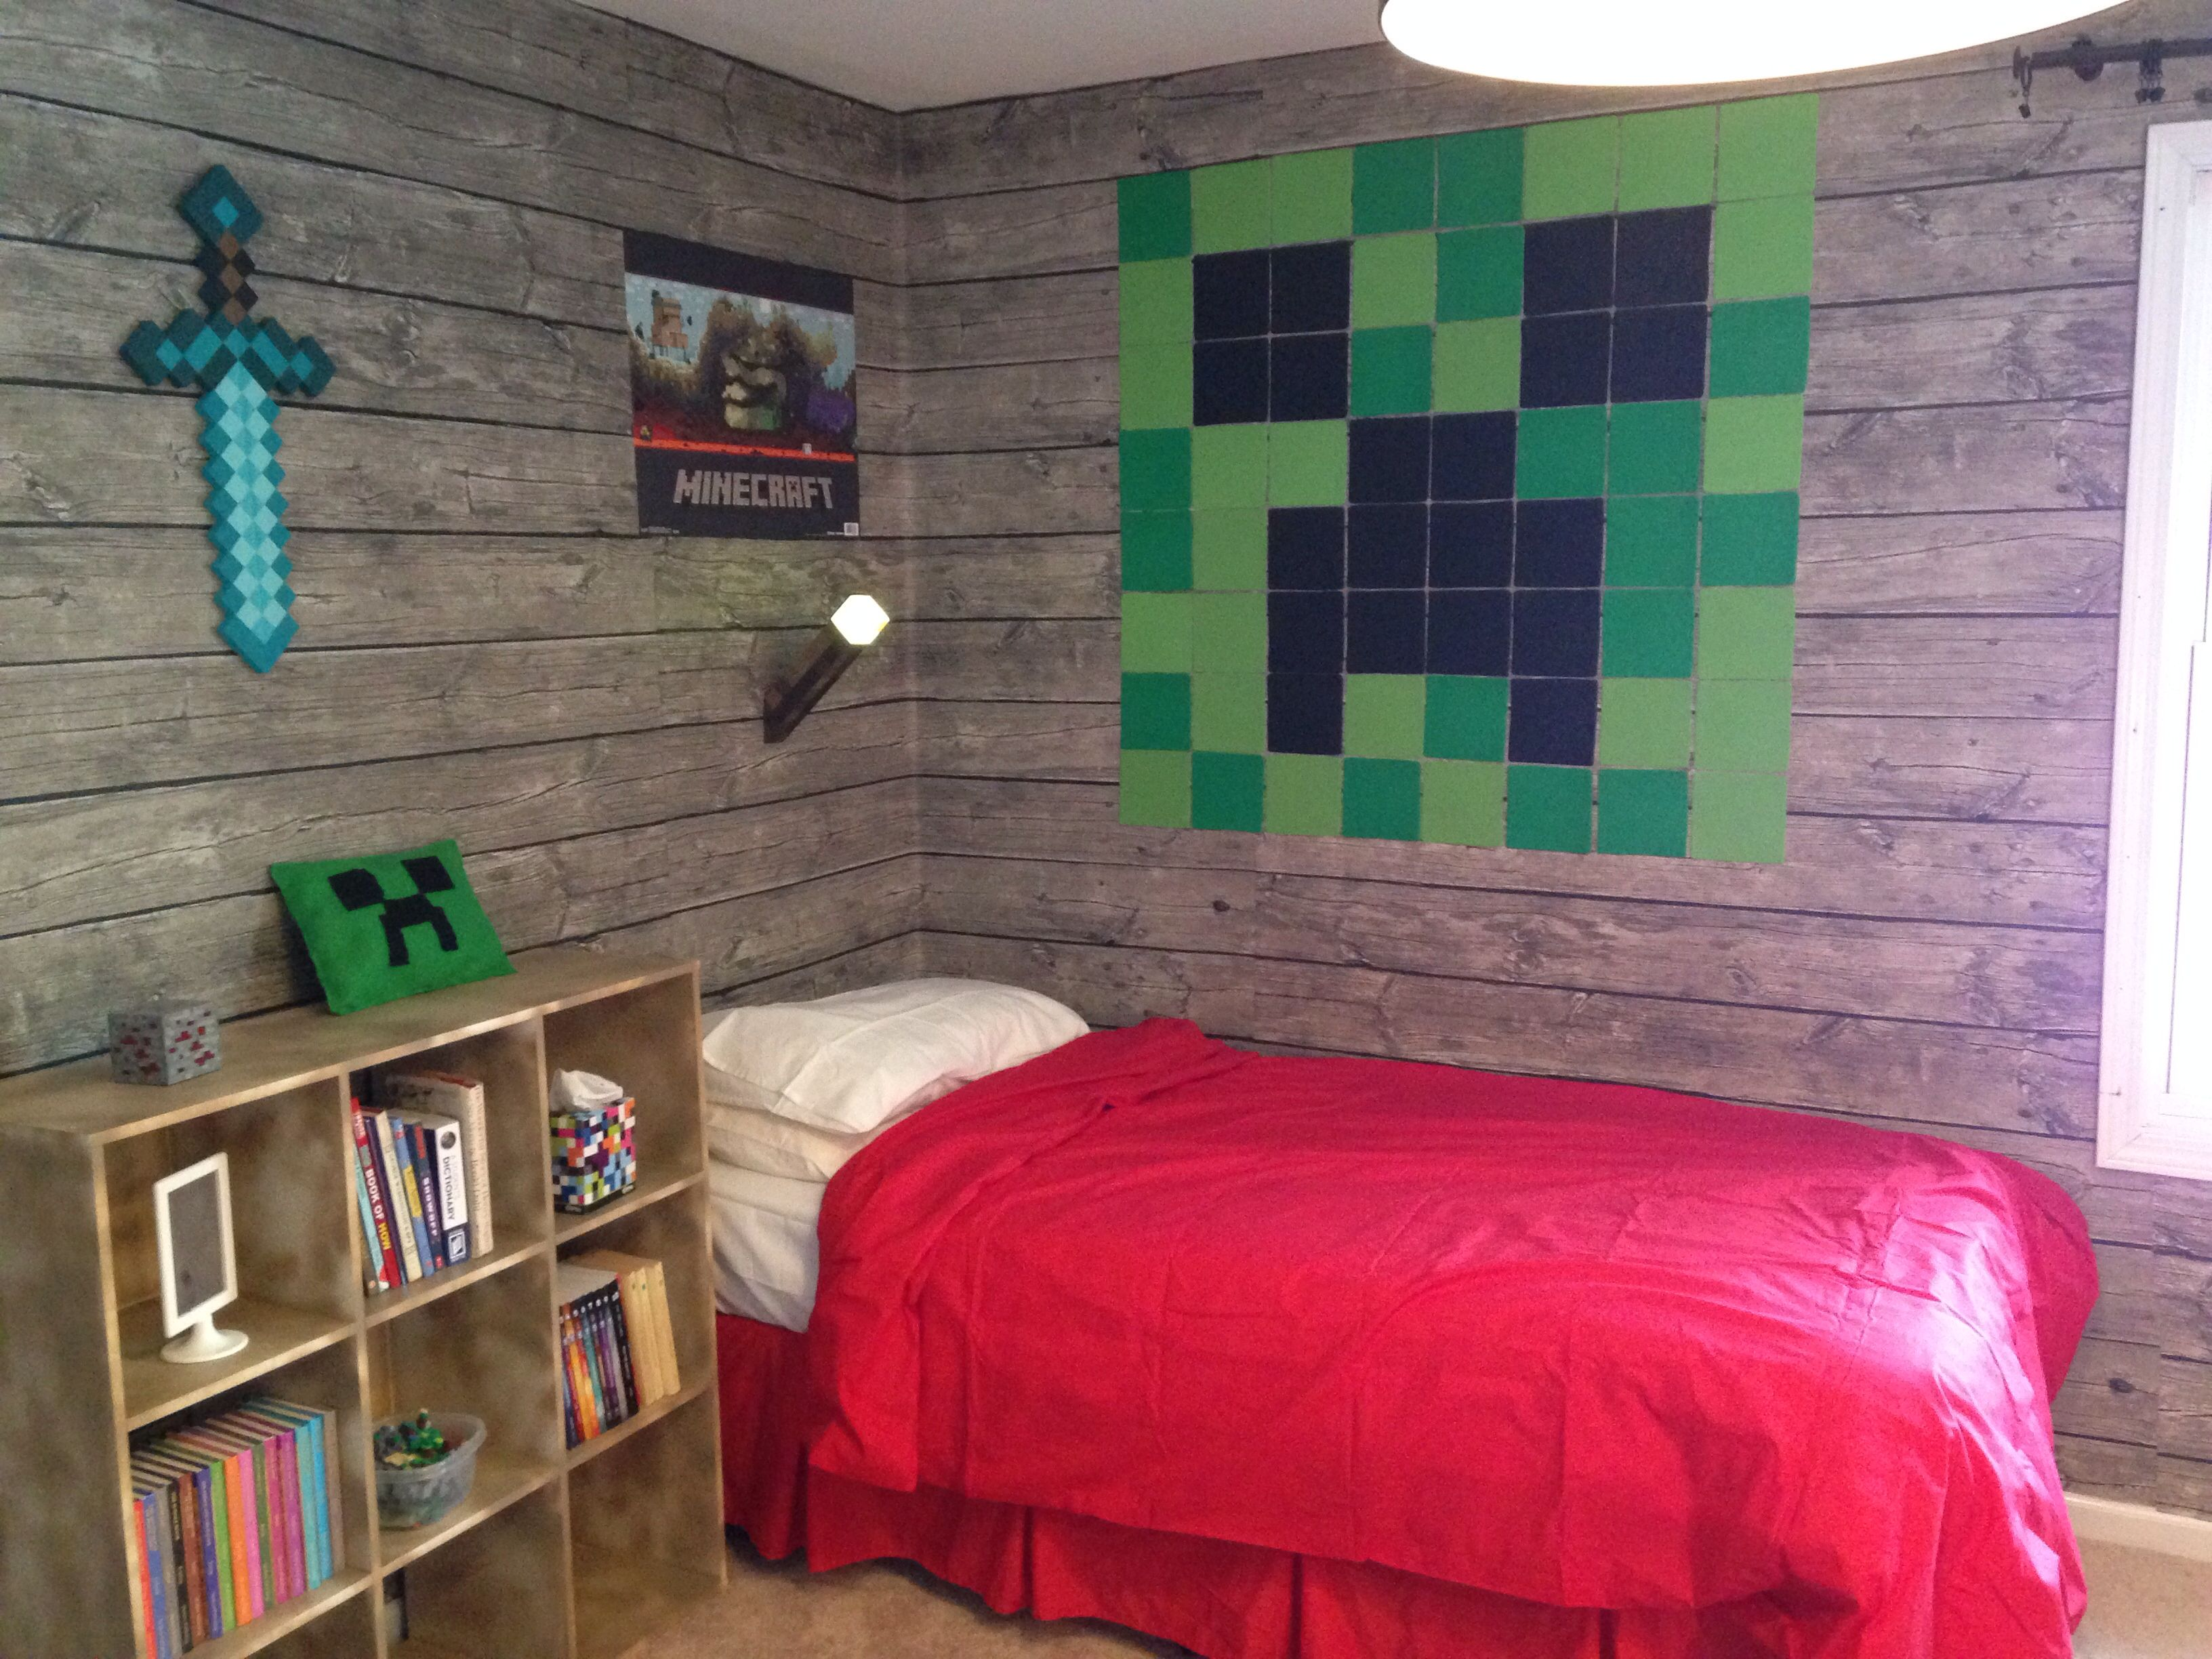 Minecraft Schlafzimmer Minecraft Bedroom For Kiddo Minecraft Schlafzimmer